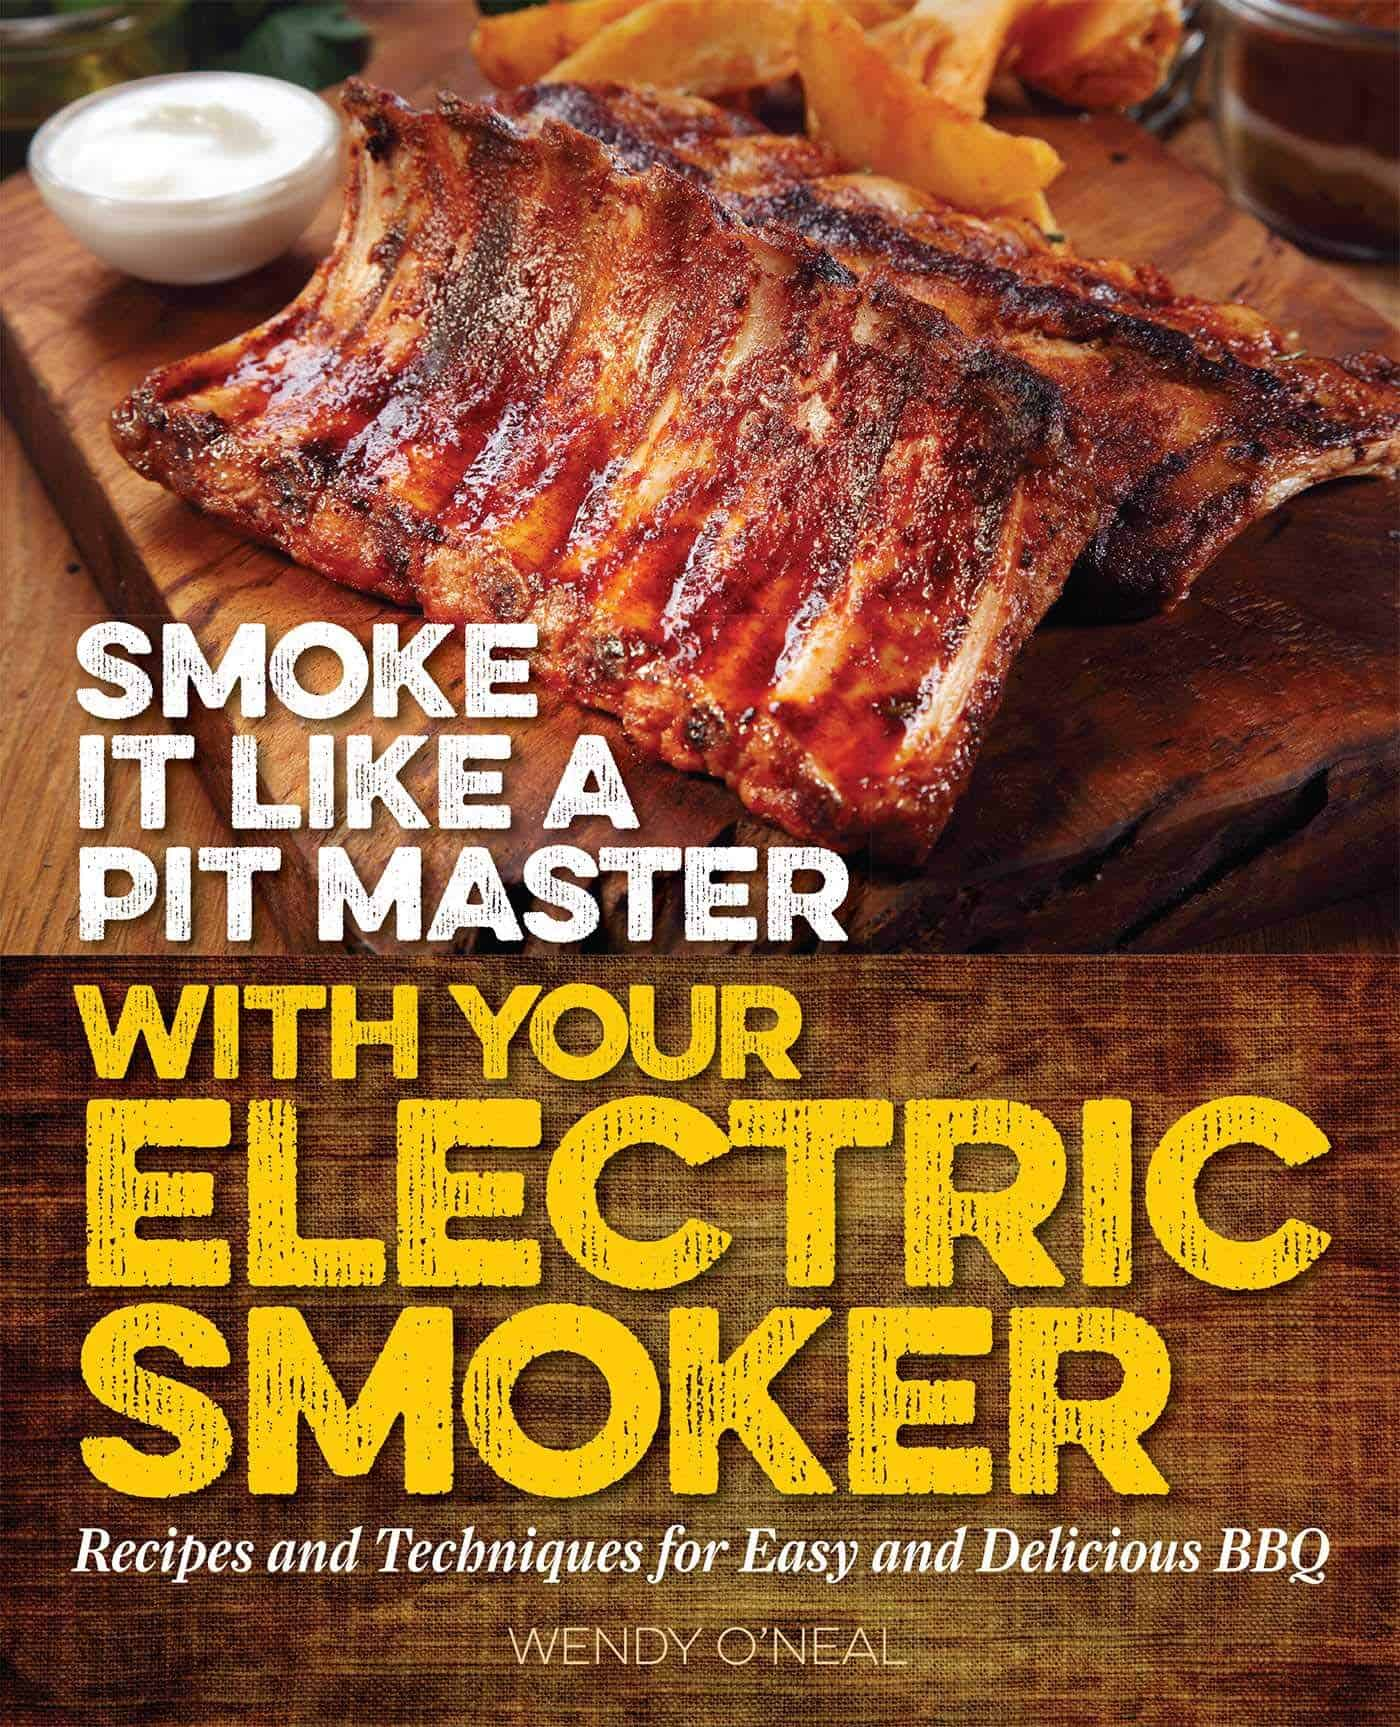 Best for beginners- Smoke It Like a Pit Master with Your Electric Smoker- Recipes and Techniques for Easy and Delicious BBQ by Wendy O'Neal